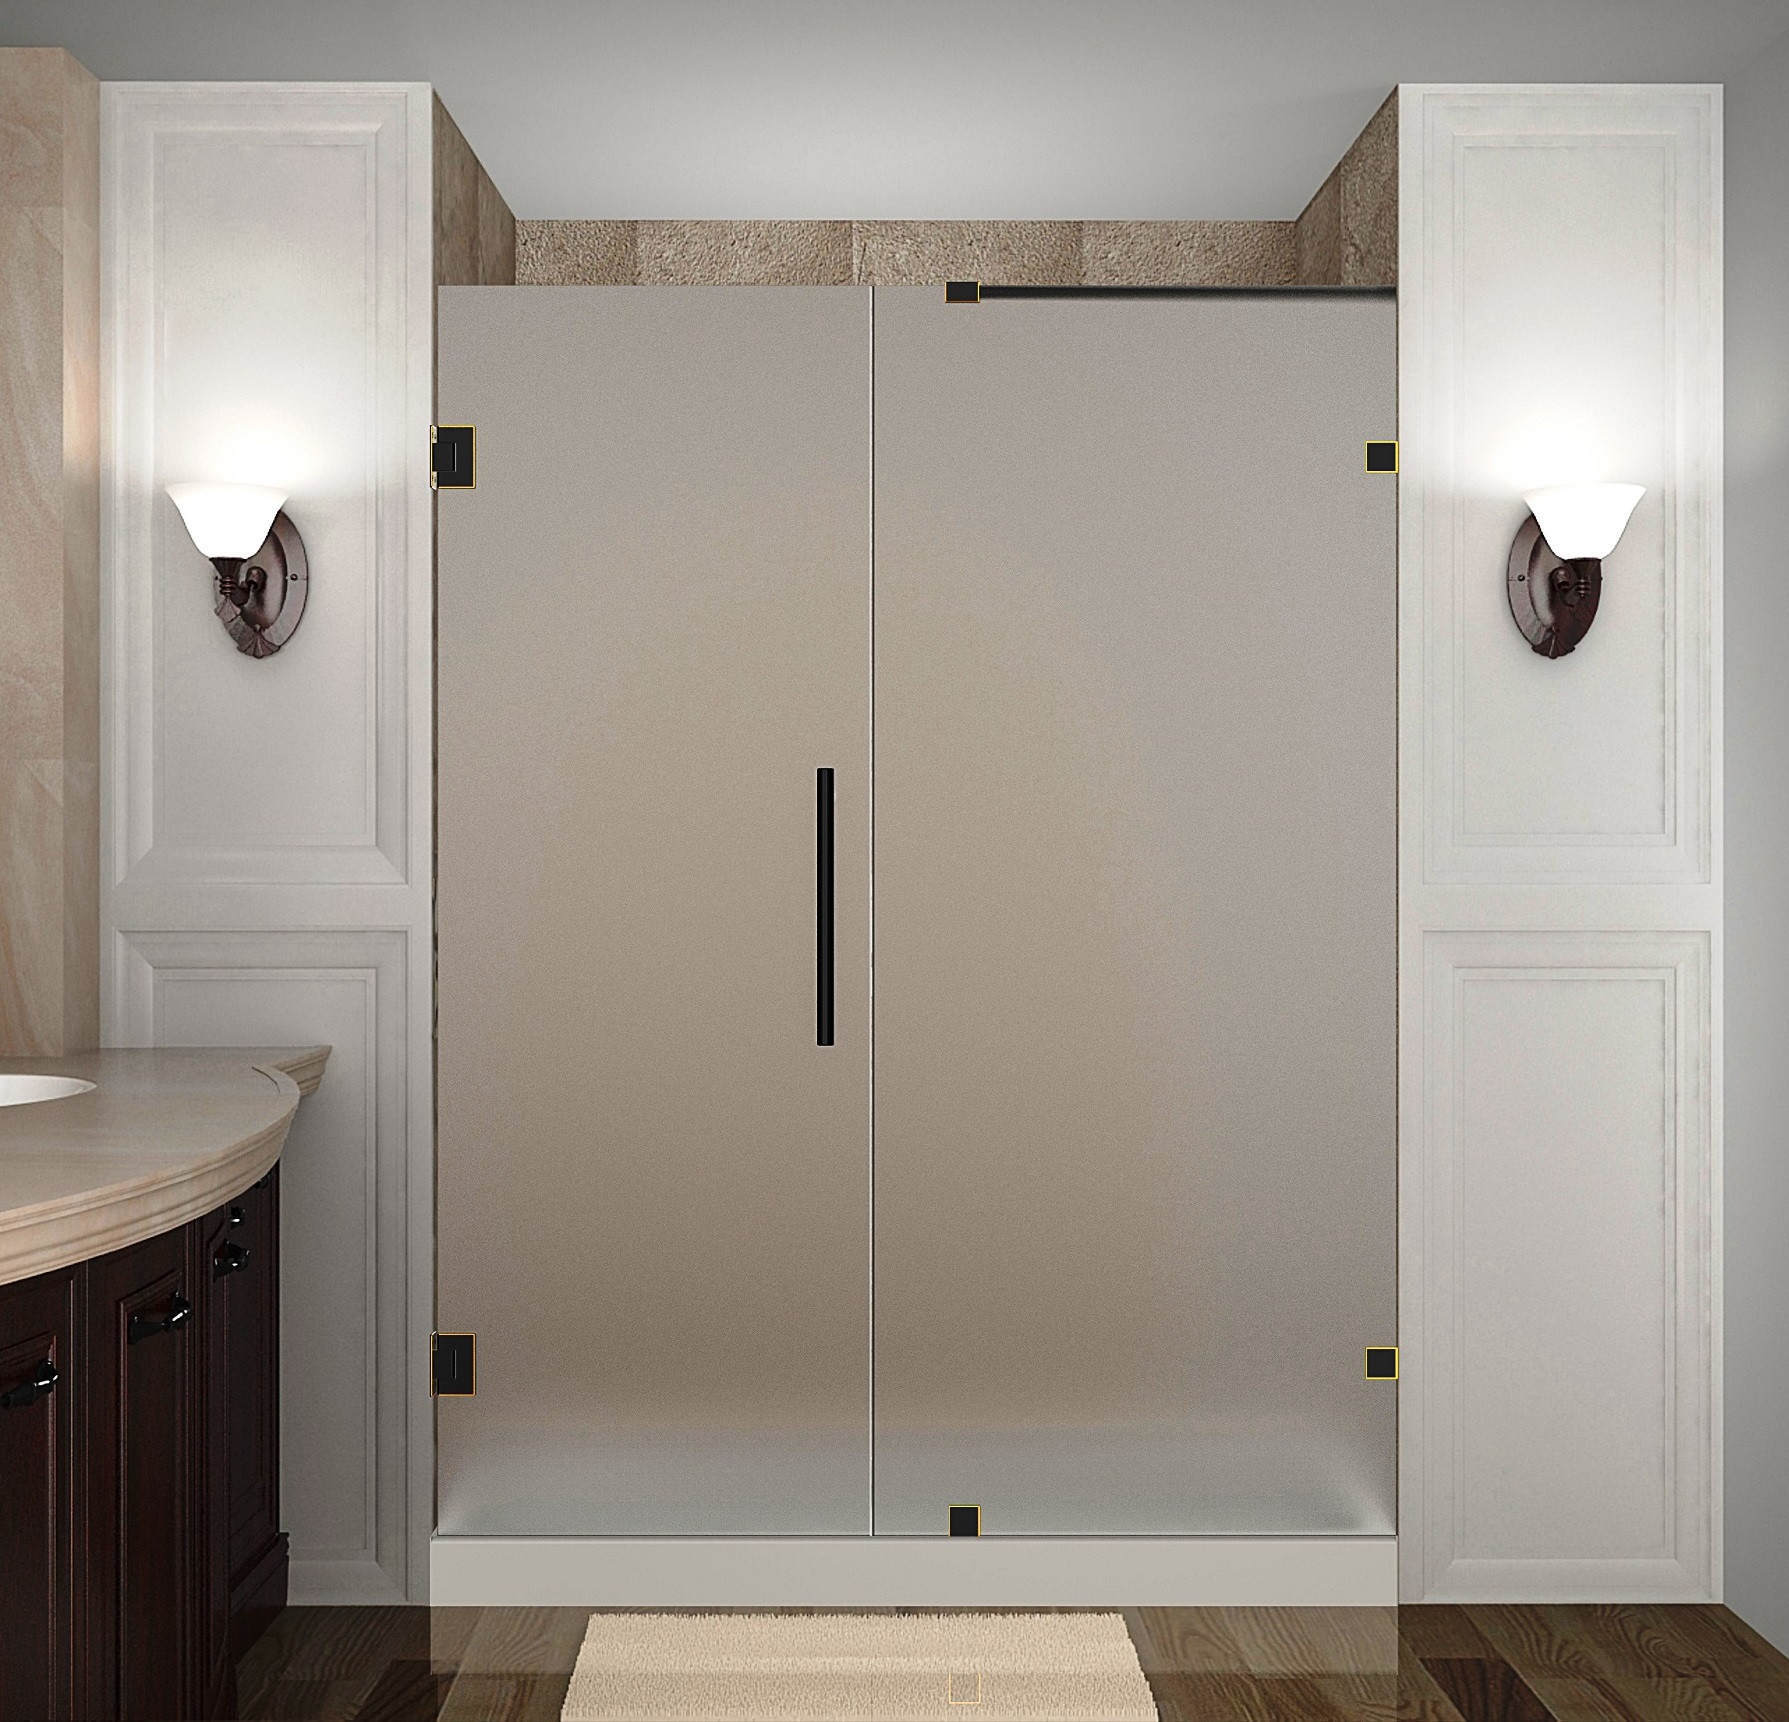 Aston Global SDR985F-ORB-56-10 Frameless Hinged Frosted Glass Shower Door In Oil Rubbed Bronze